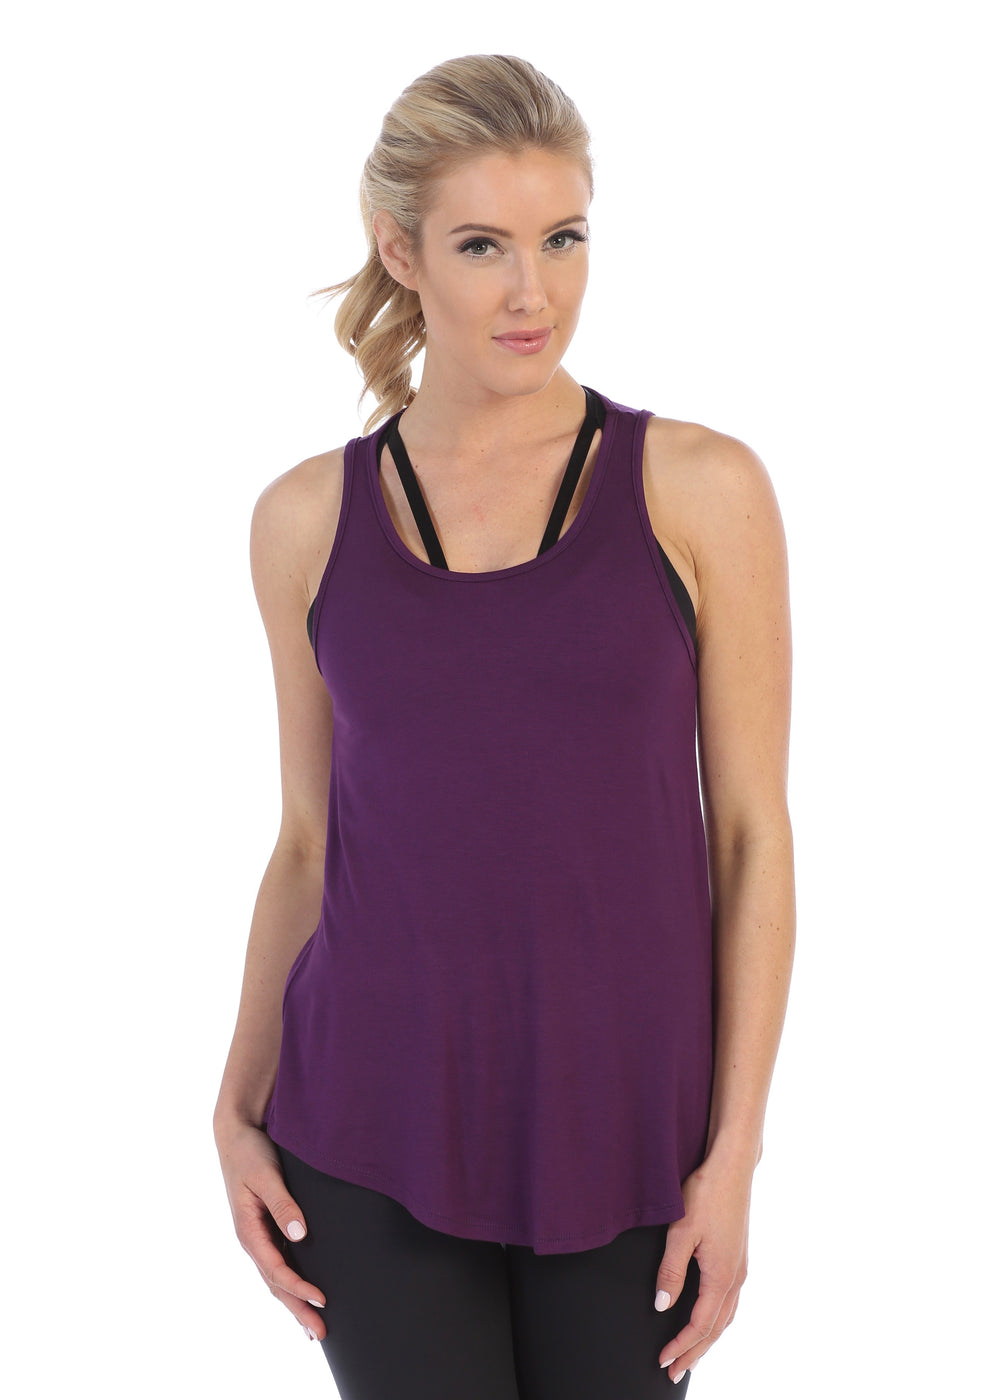 Plum-Get Shredded Workout Tank Top-front image flowy